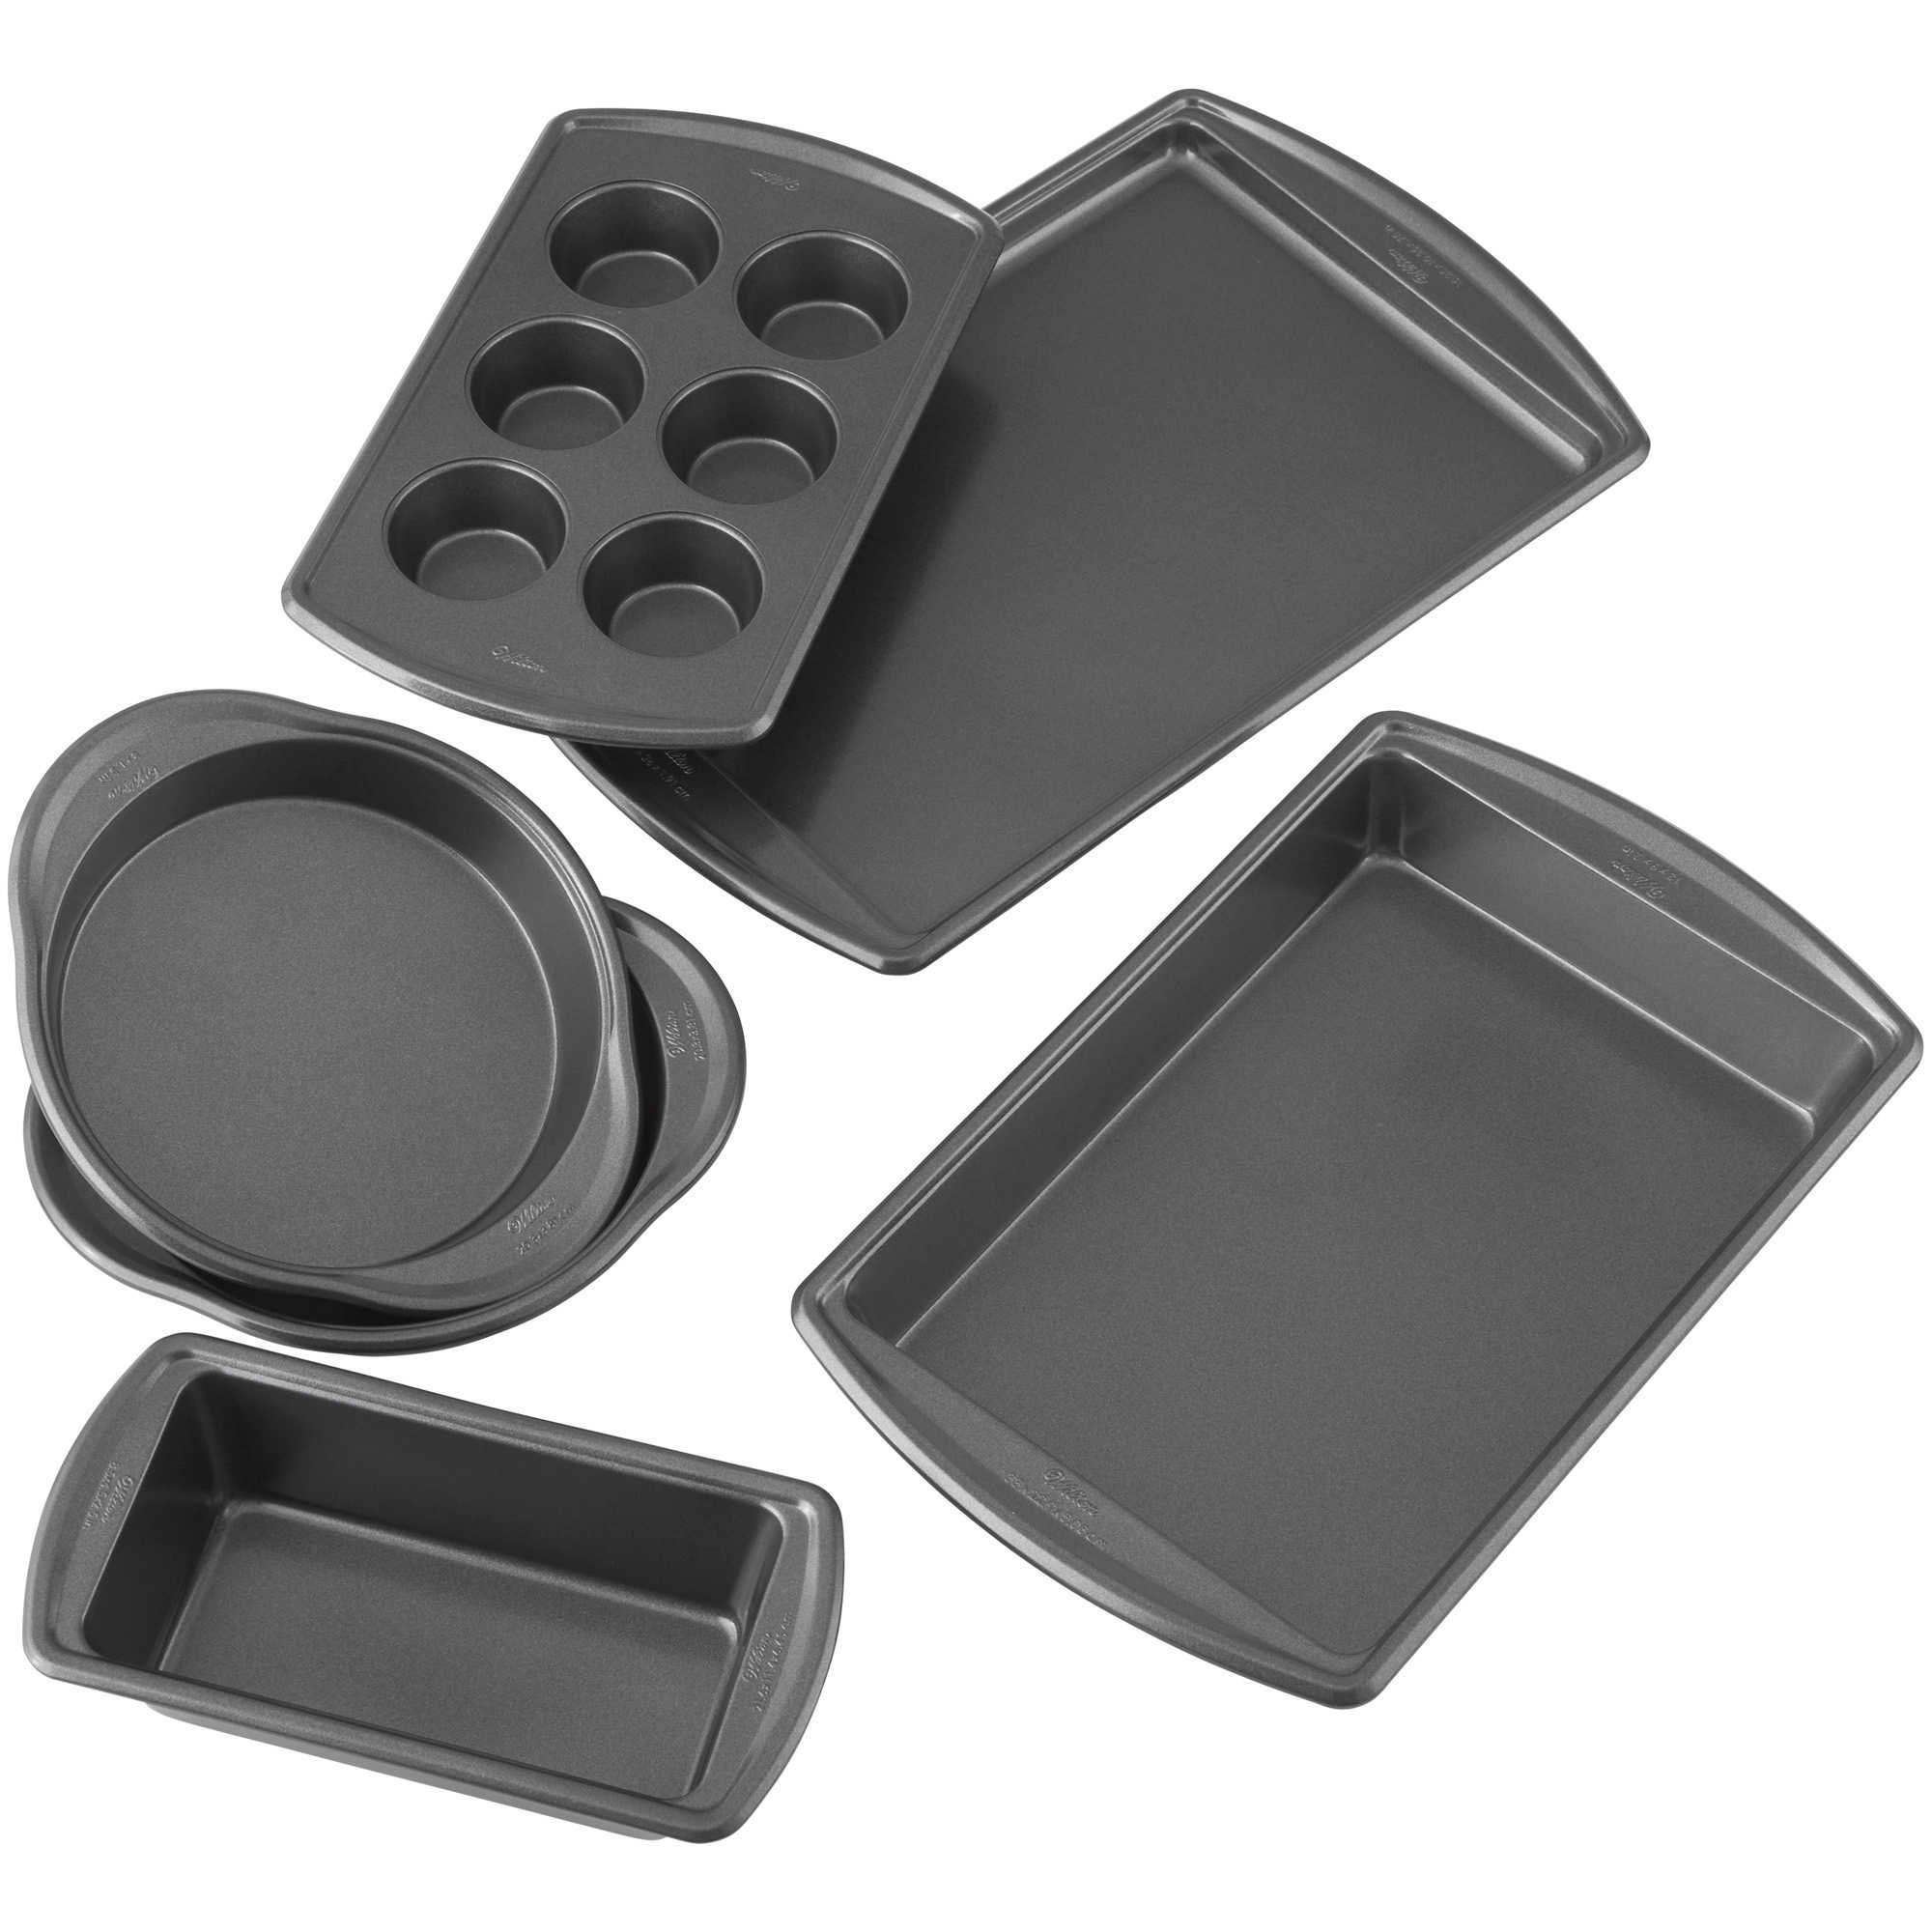 Wilton Advance Select Premium Nonstick 6-Piece Bakeware Set by wilton advance select (Image #1)